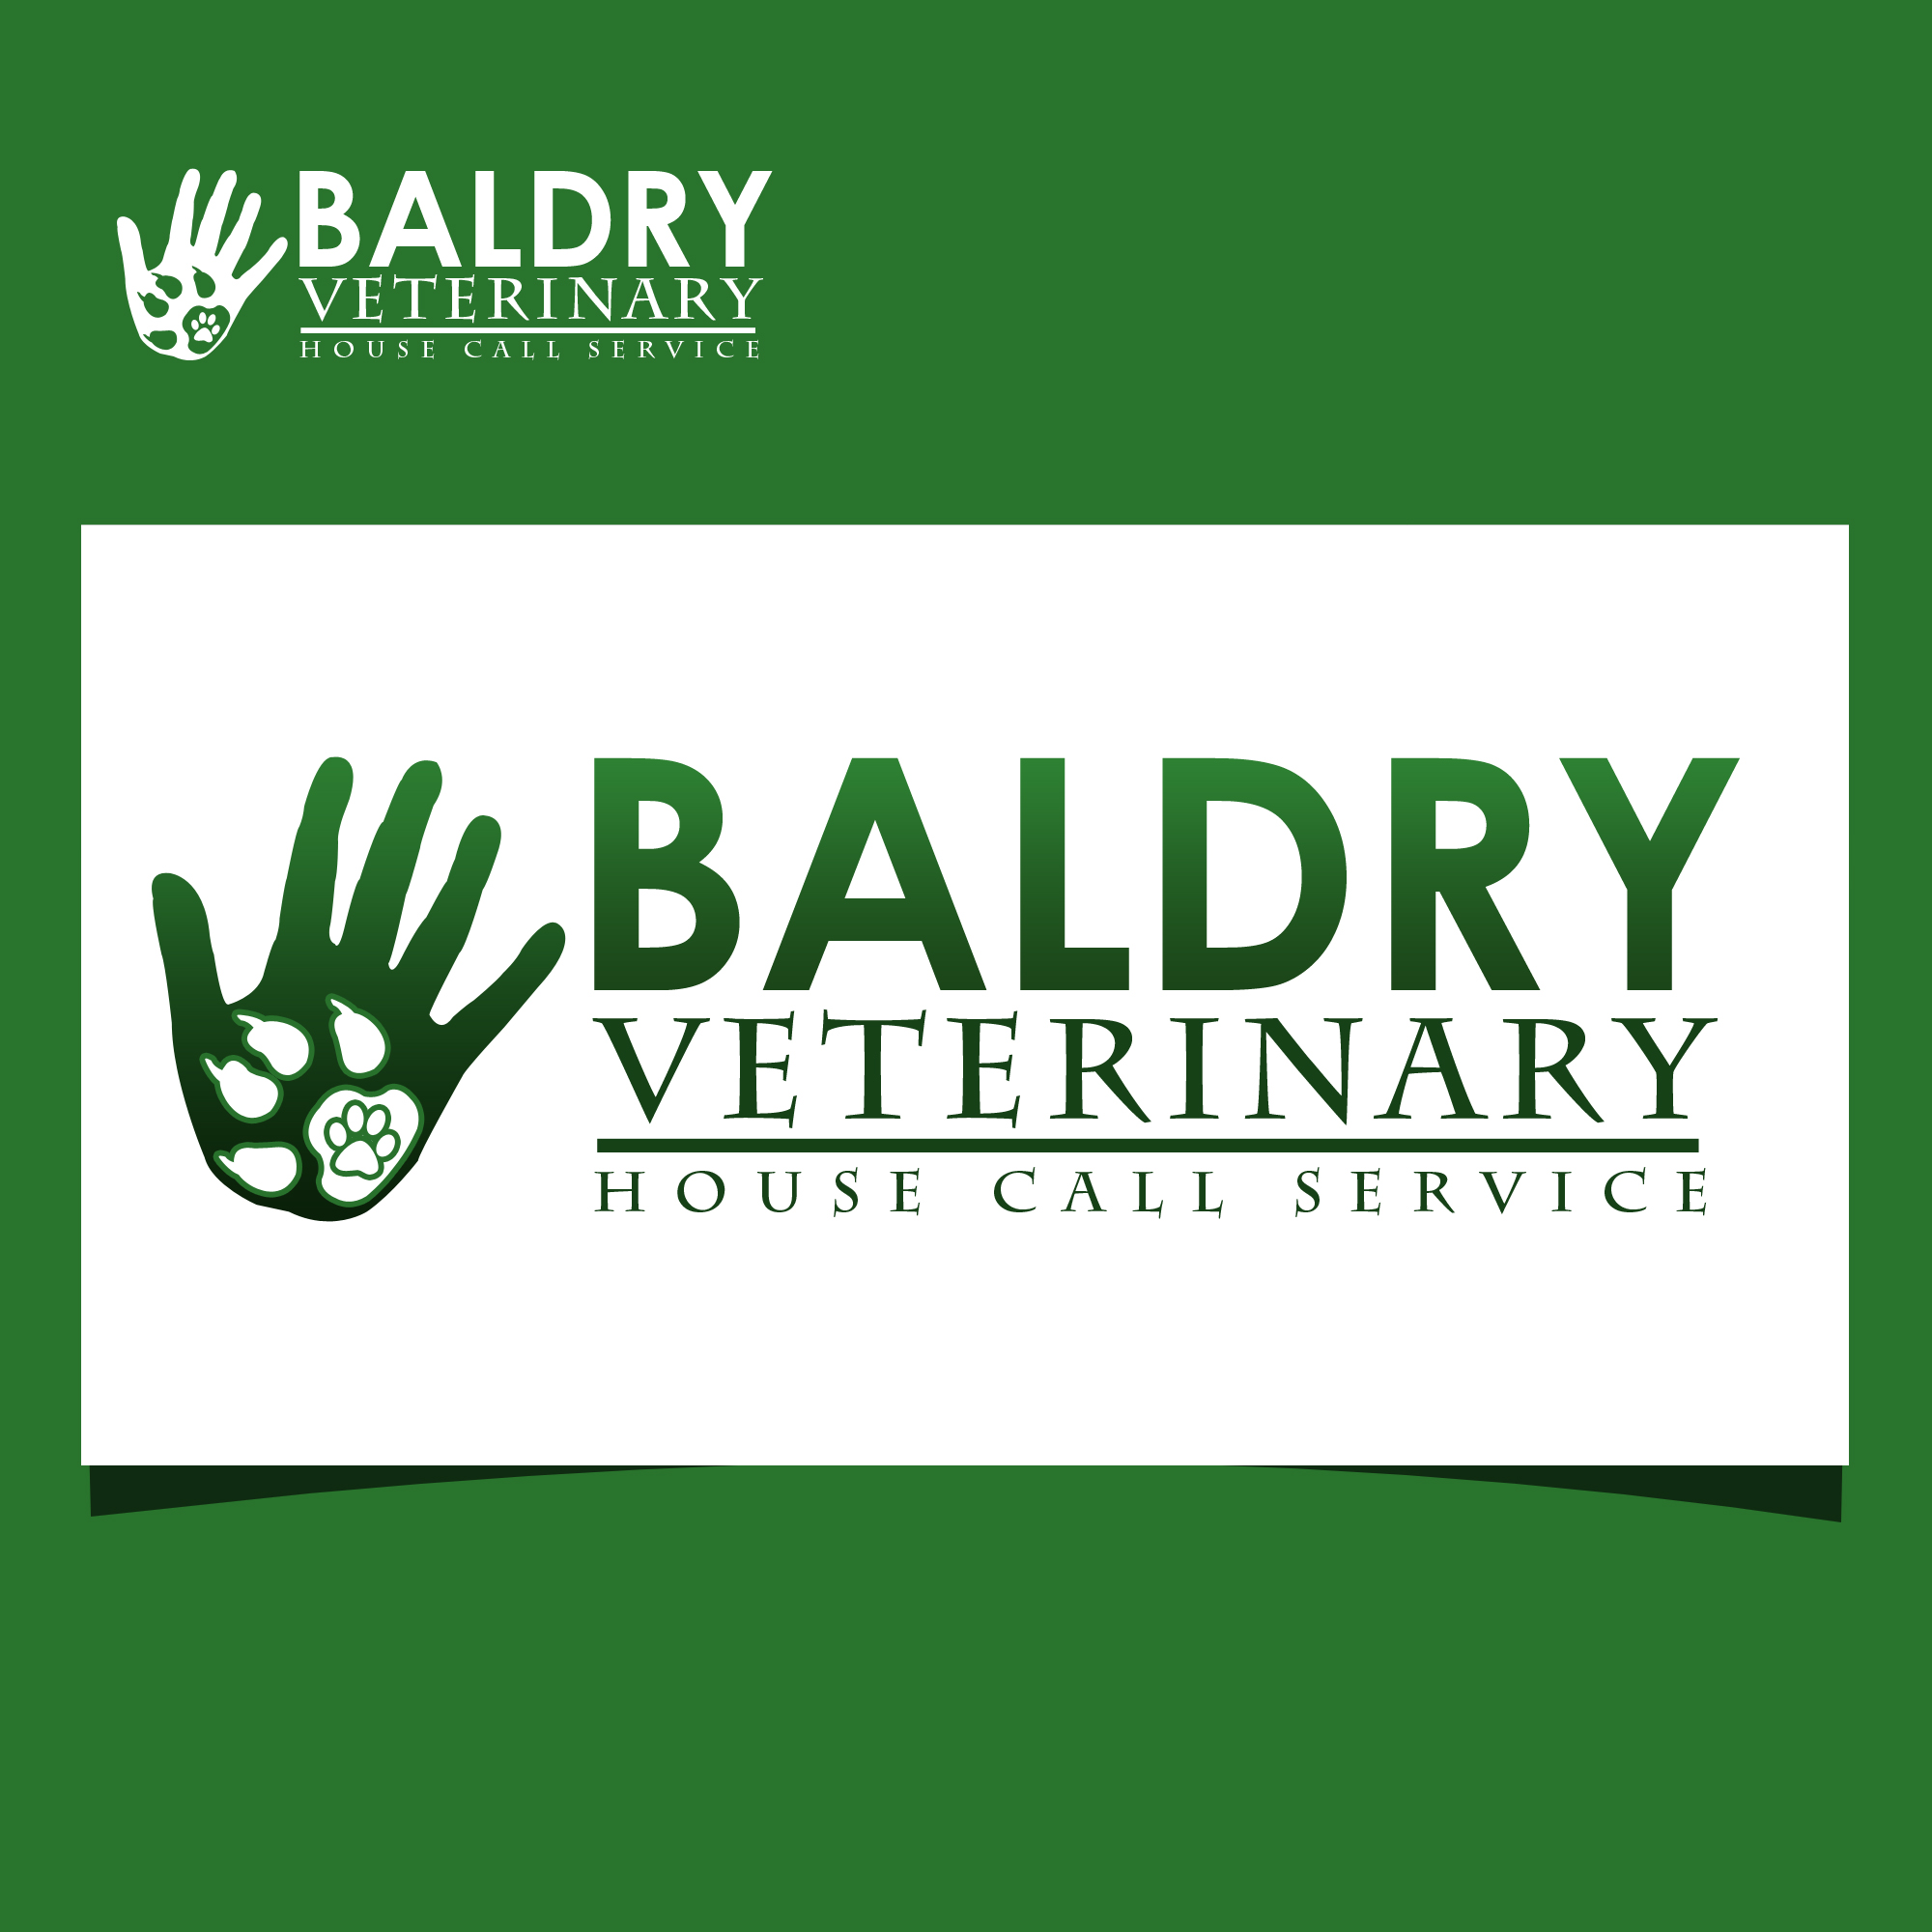 Logo Design by omARTist - Entry No. 106 in the Logo Design Contest Captivating Logo Design for Baldry Veterinary House Call Service.